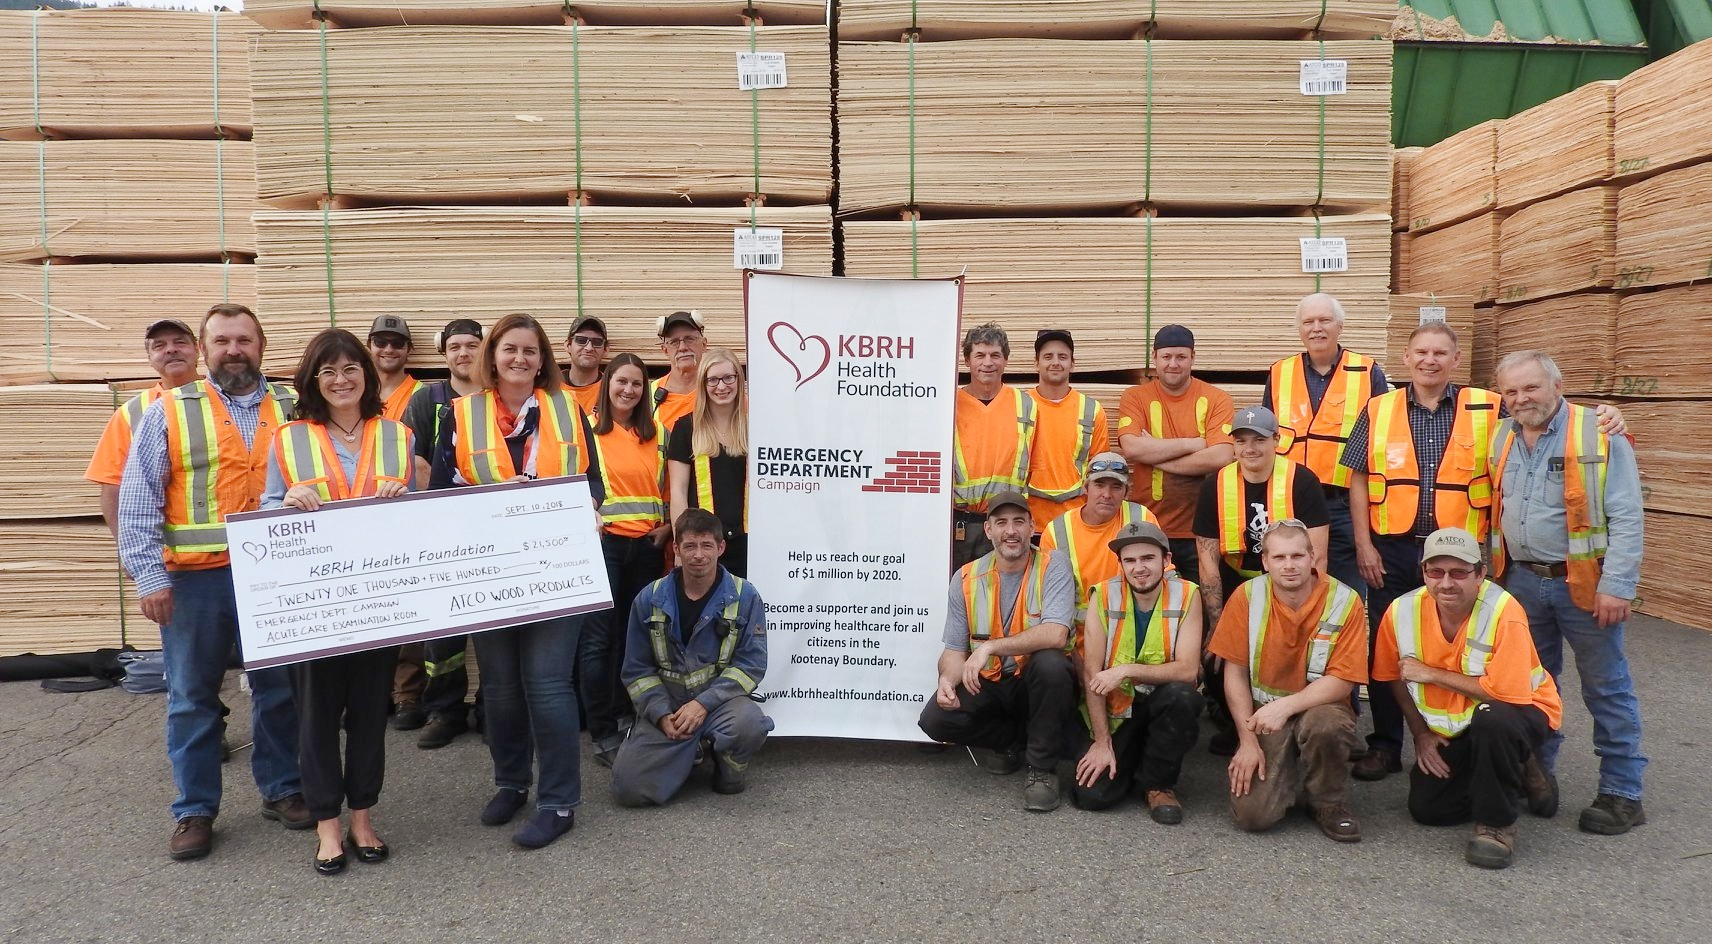 The KBRH Health Foundation has received $21,500 from ATCO Wood Products Ltd. for the Emergency Department Campaign.